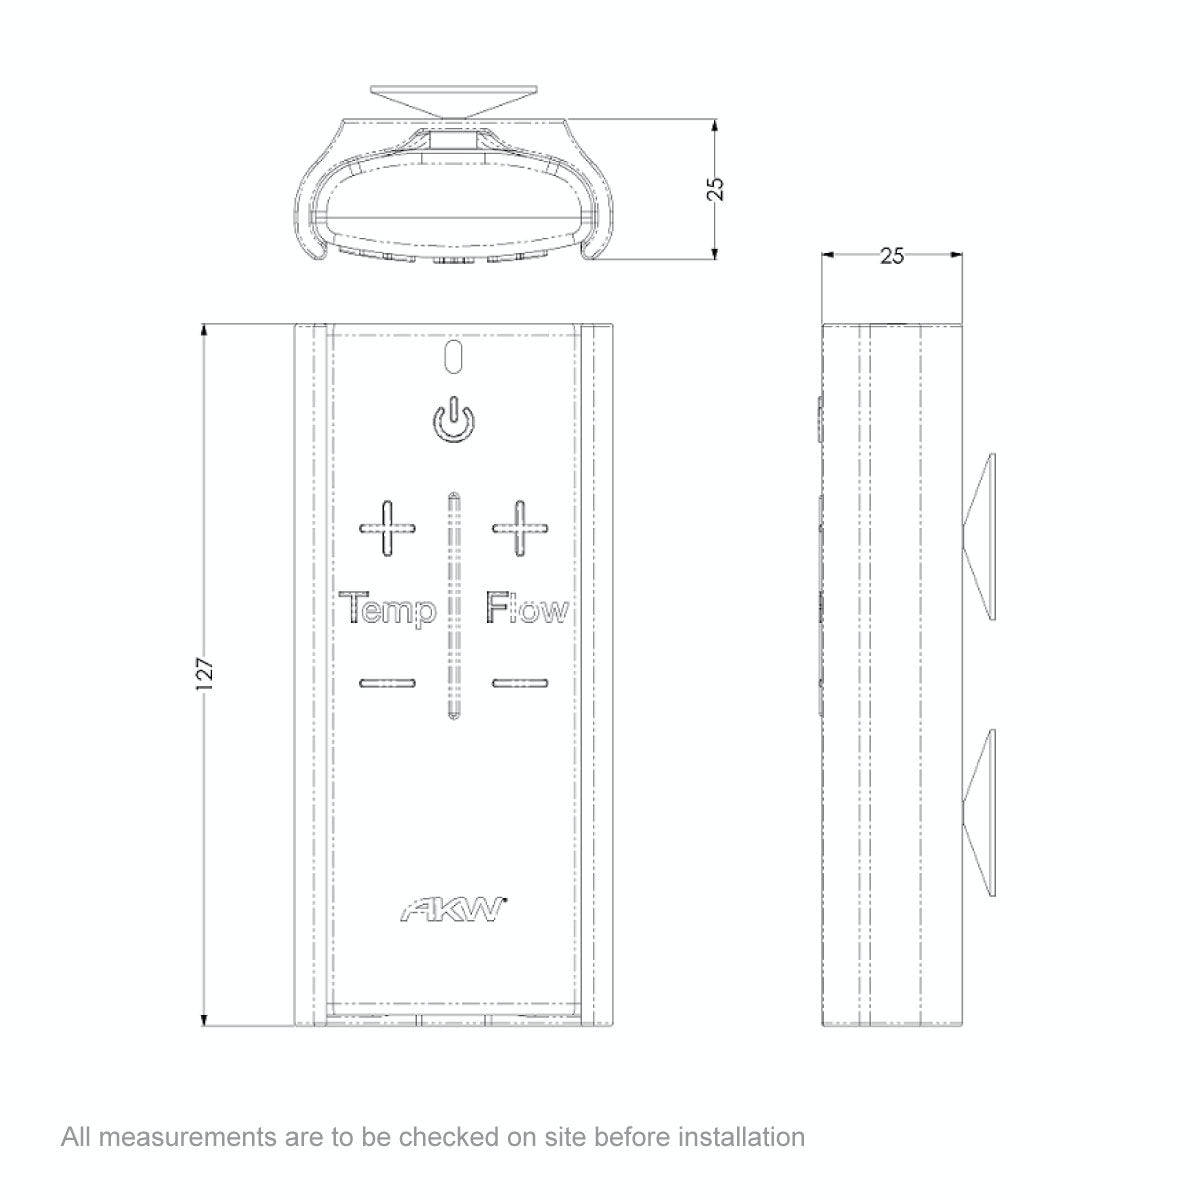 Dimensions for AKW iCare electric shower remote control